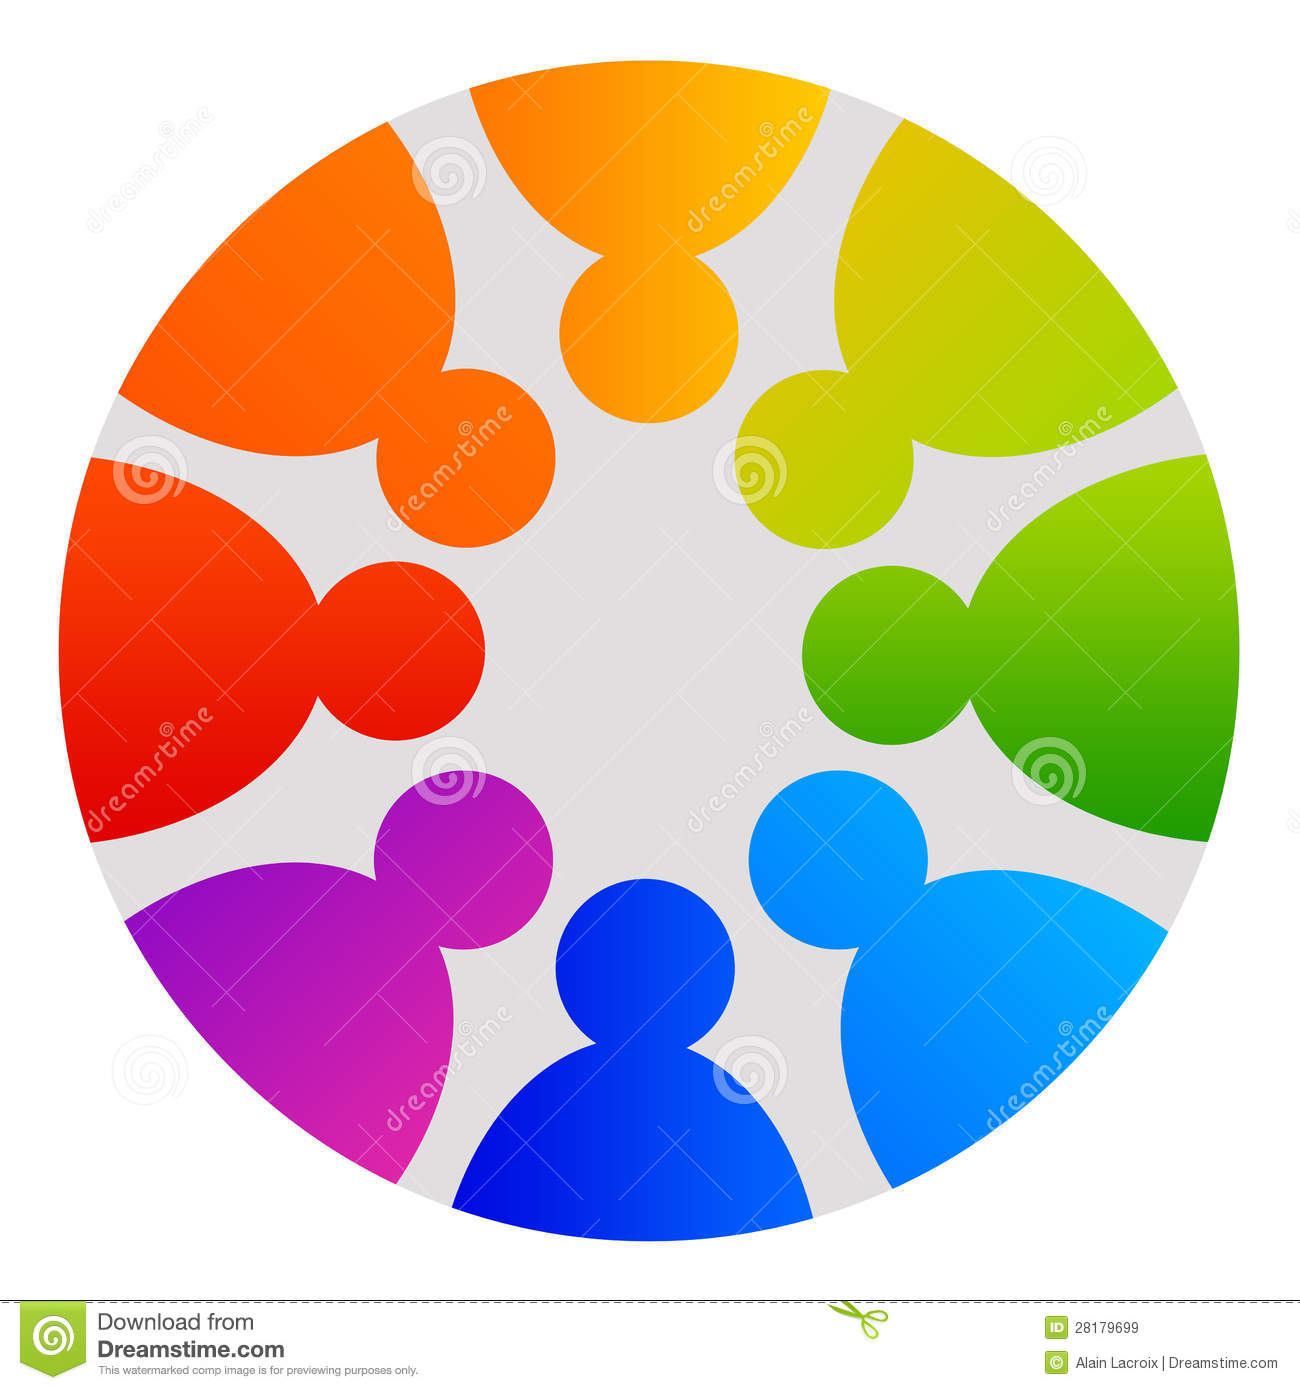 People Circle Royalty Free Stock Images